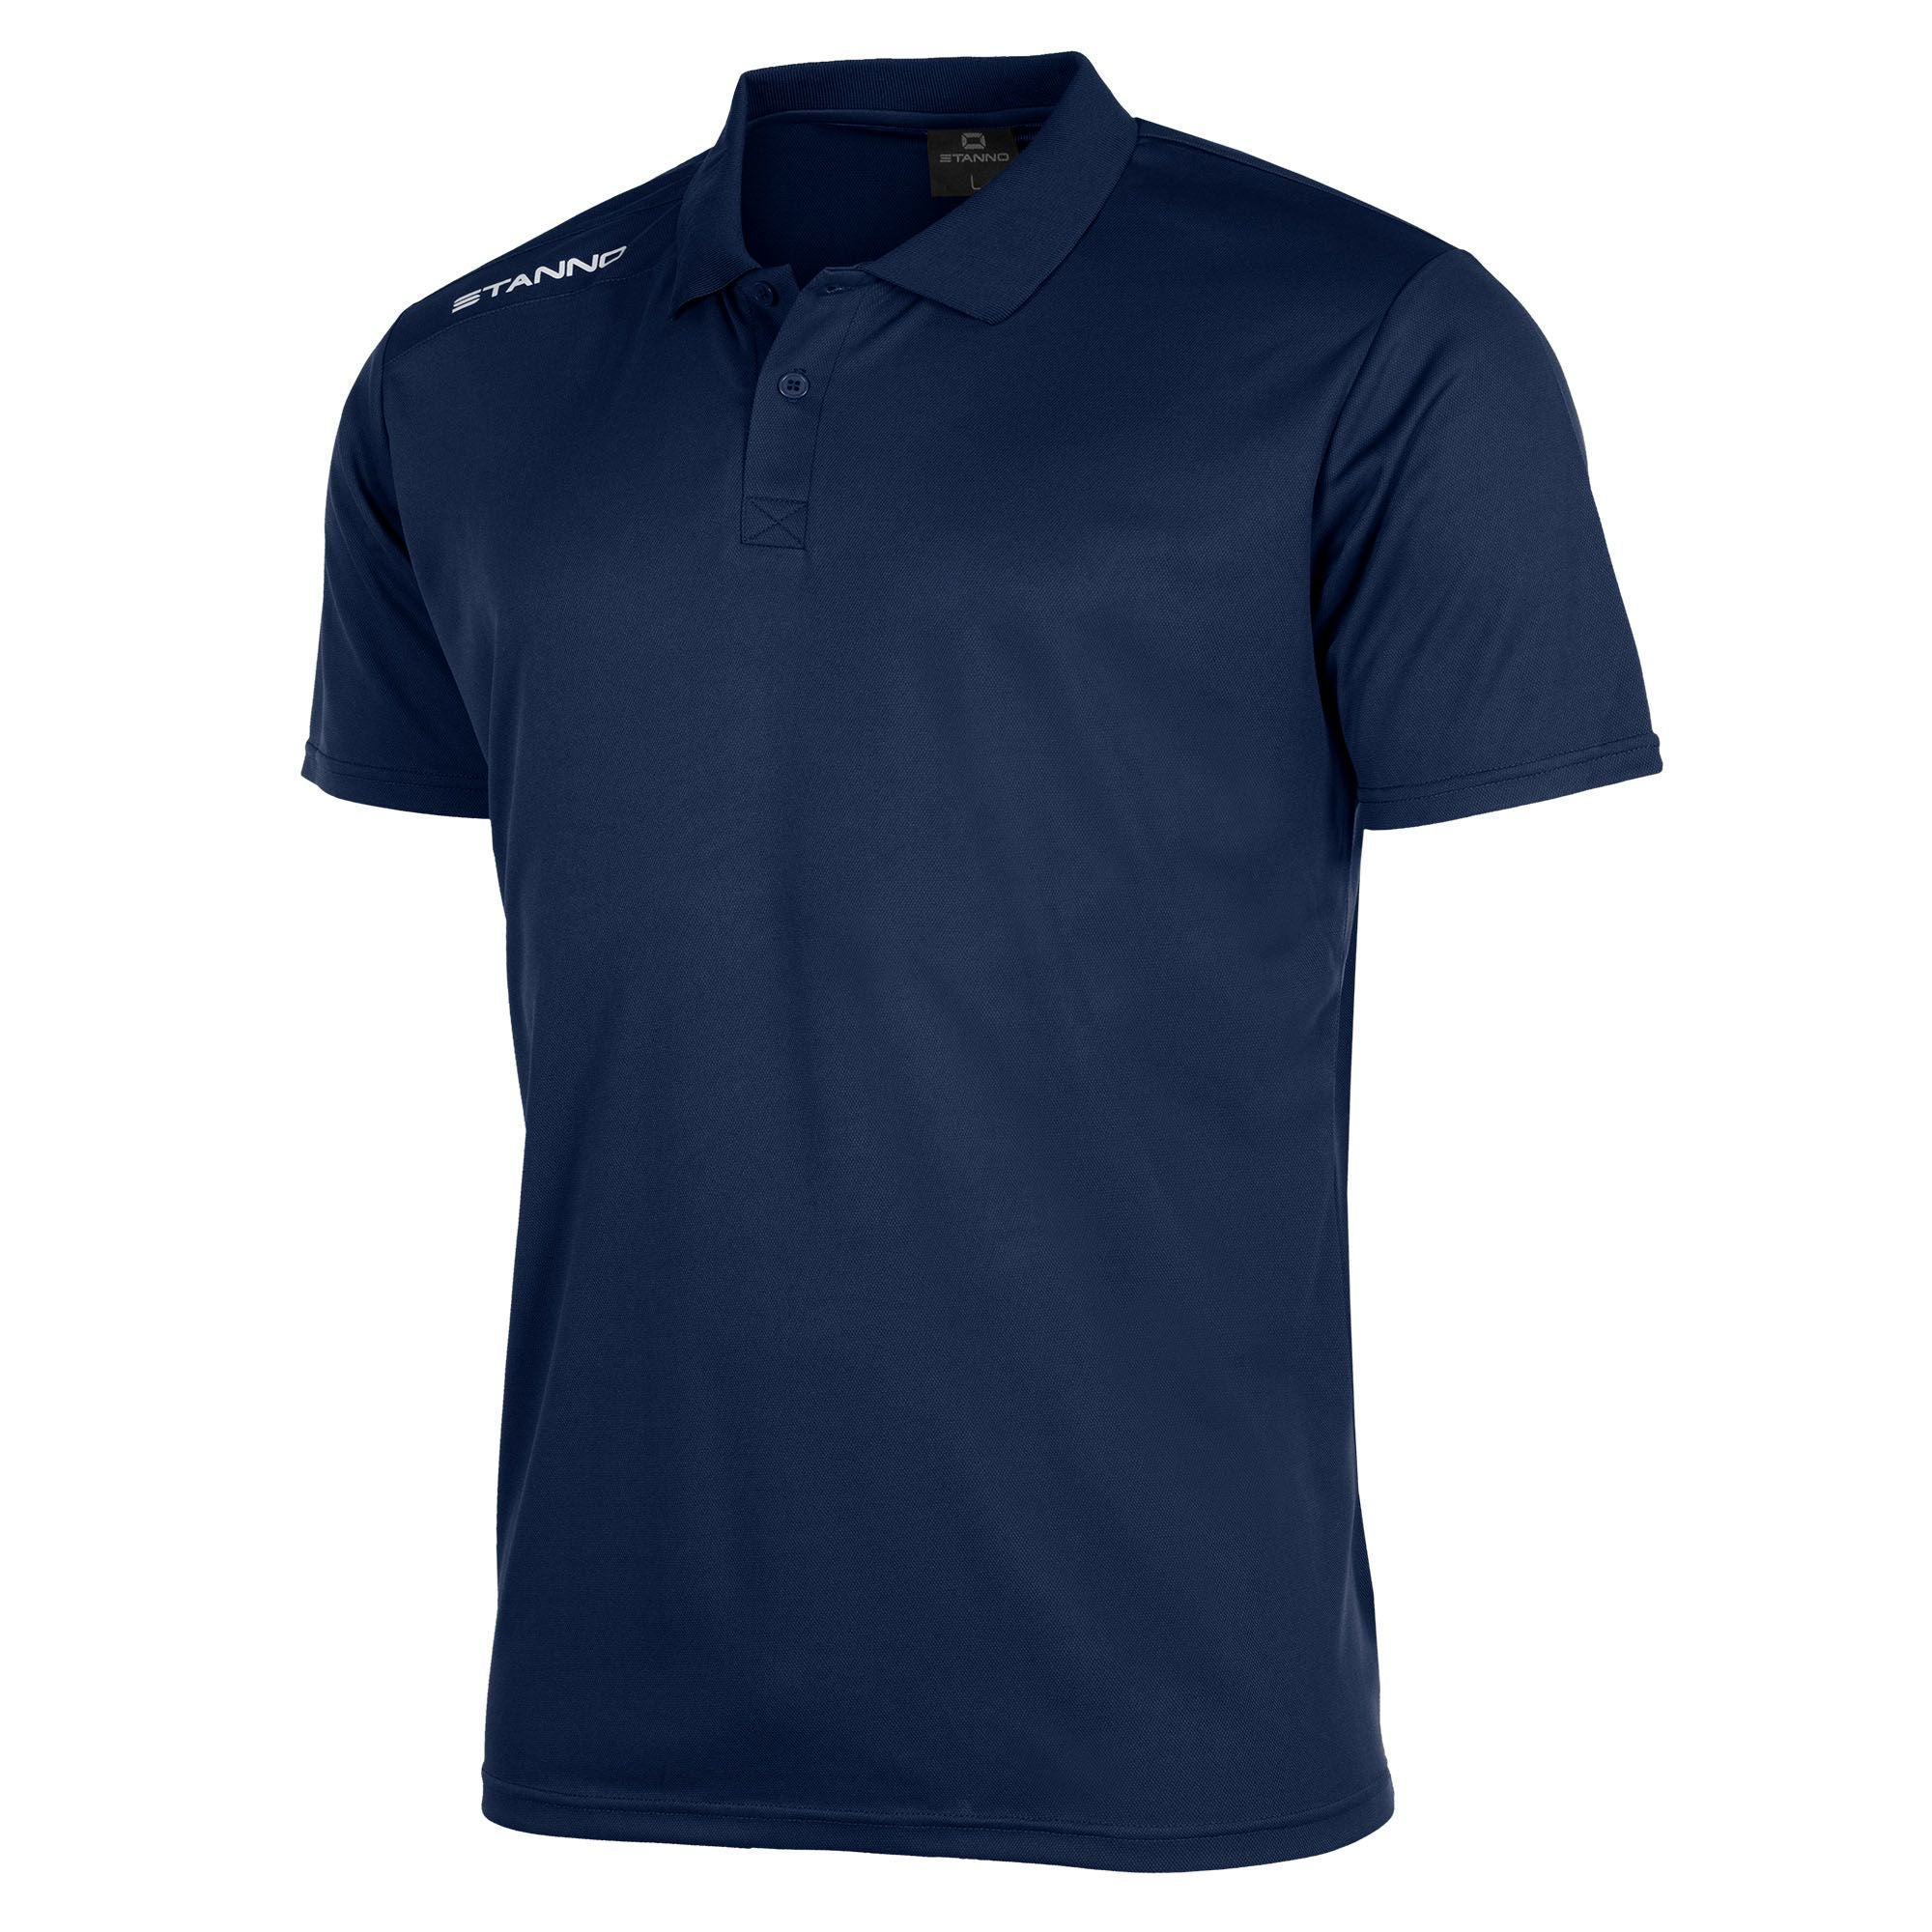 Front of Stanno Field Polo Shirt in navy with white text logo on right shoulder